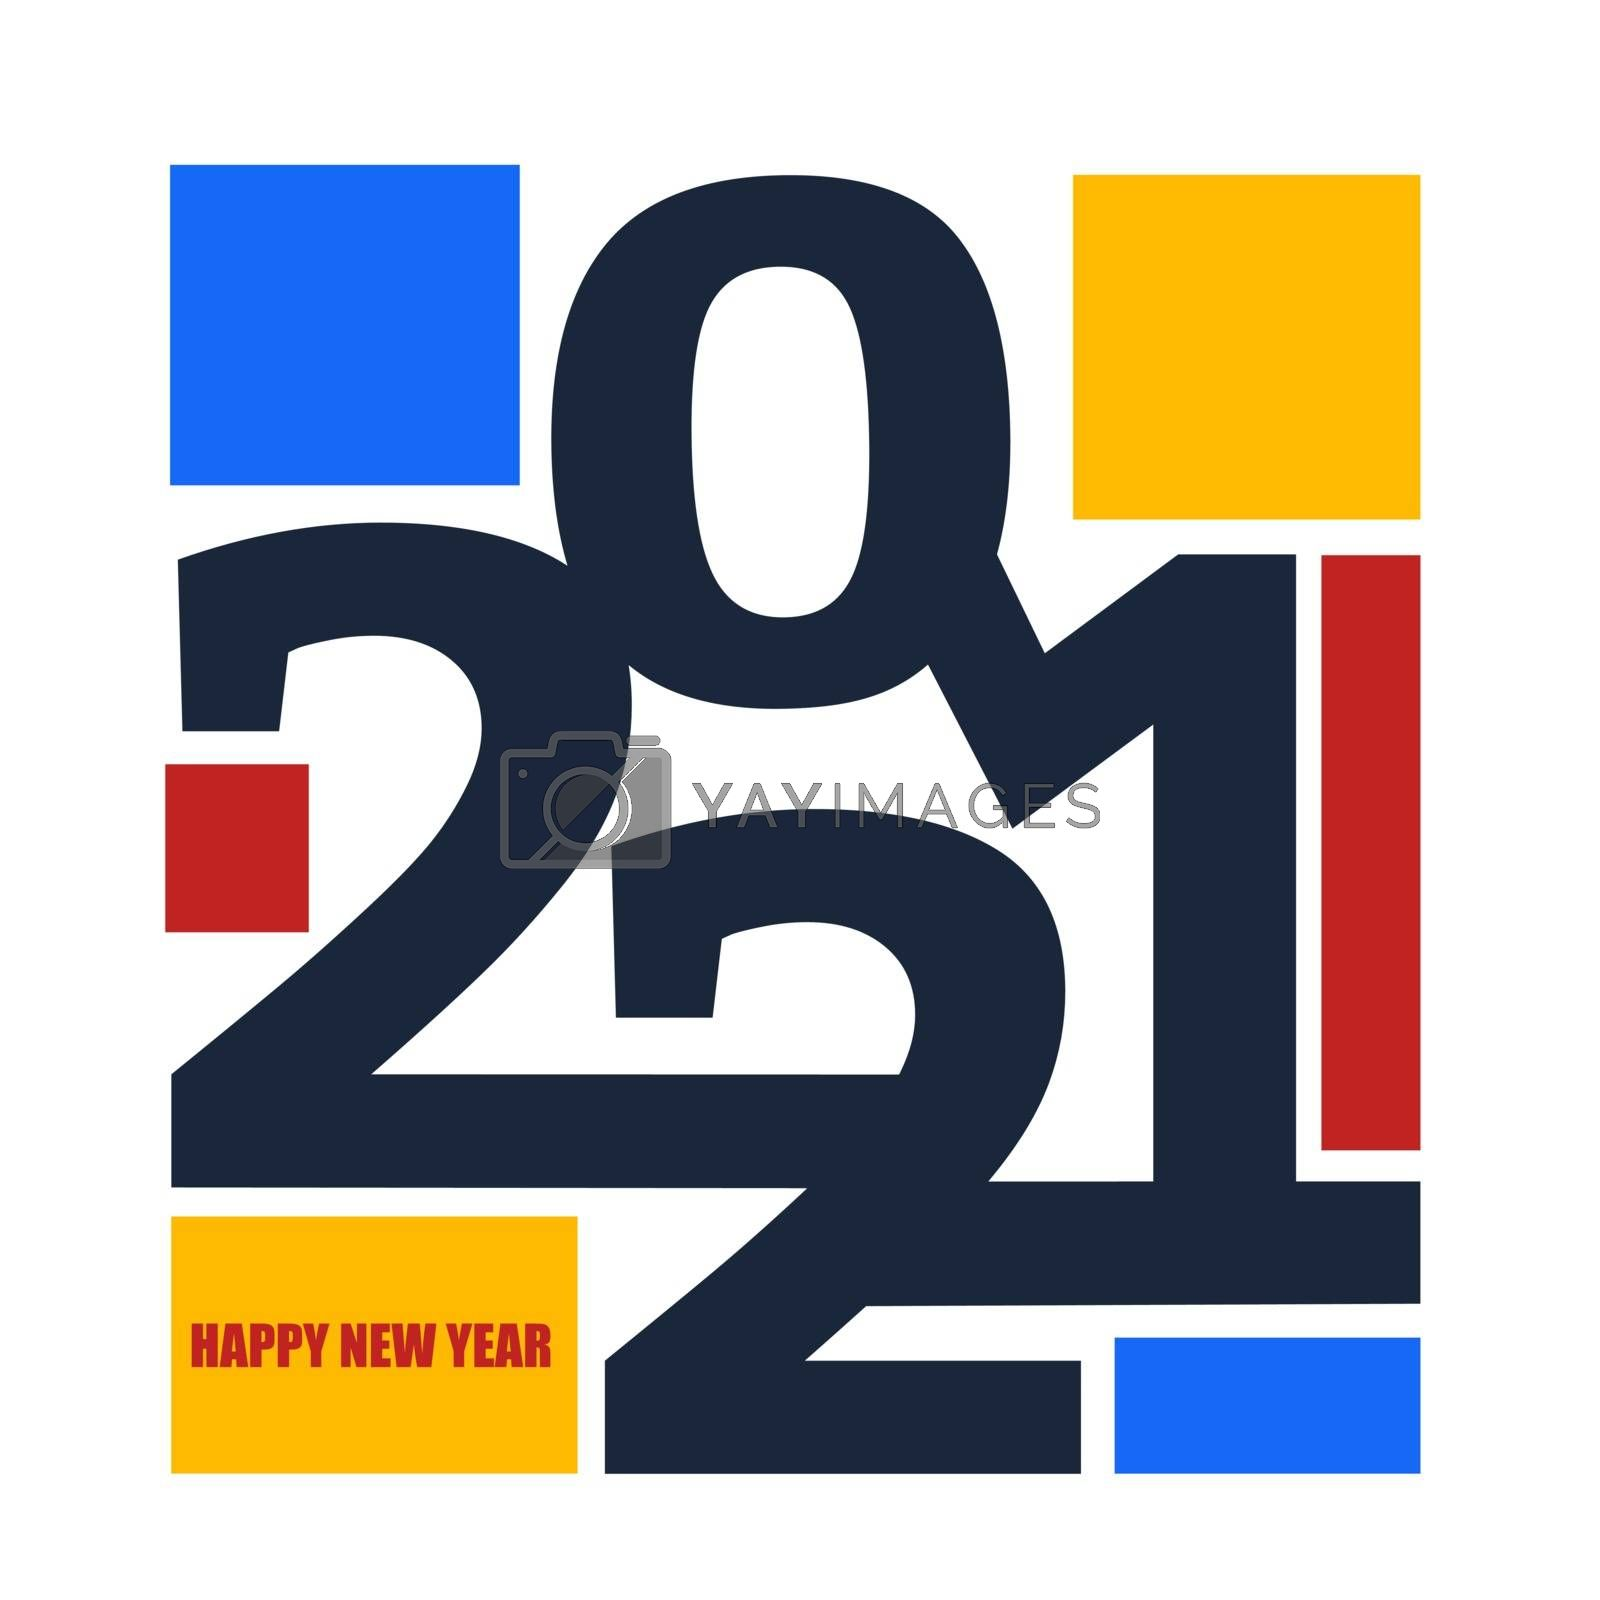 Colored 2021 Happy New Year. Elegant design of colorful 2021 logo numbers. Perfect typography for design and new year celebration invite. Christmas vector illustration. Isolated on white background